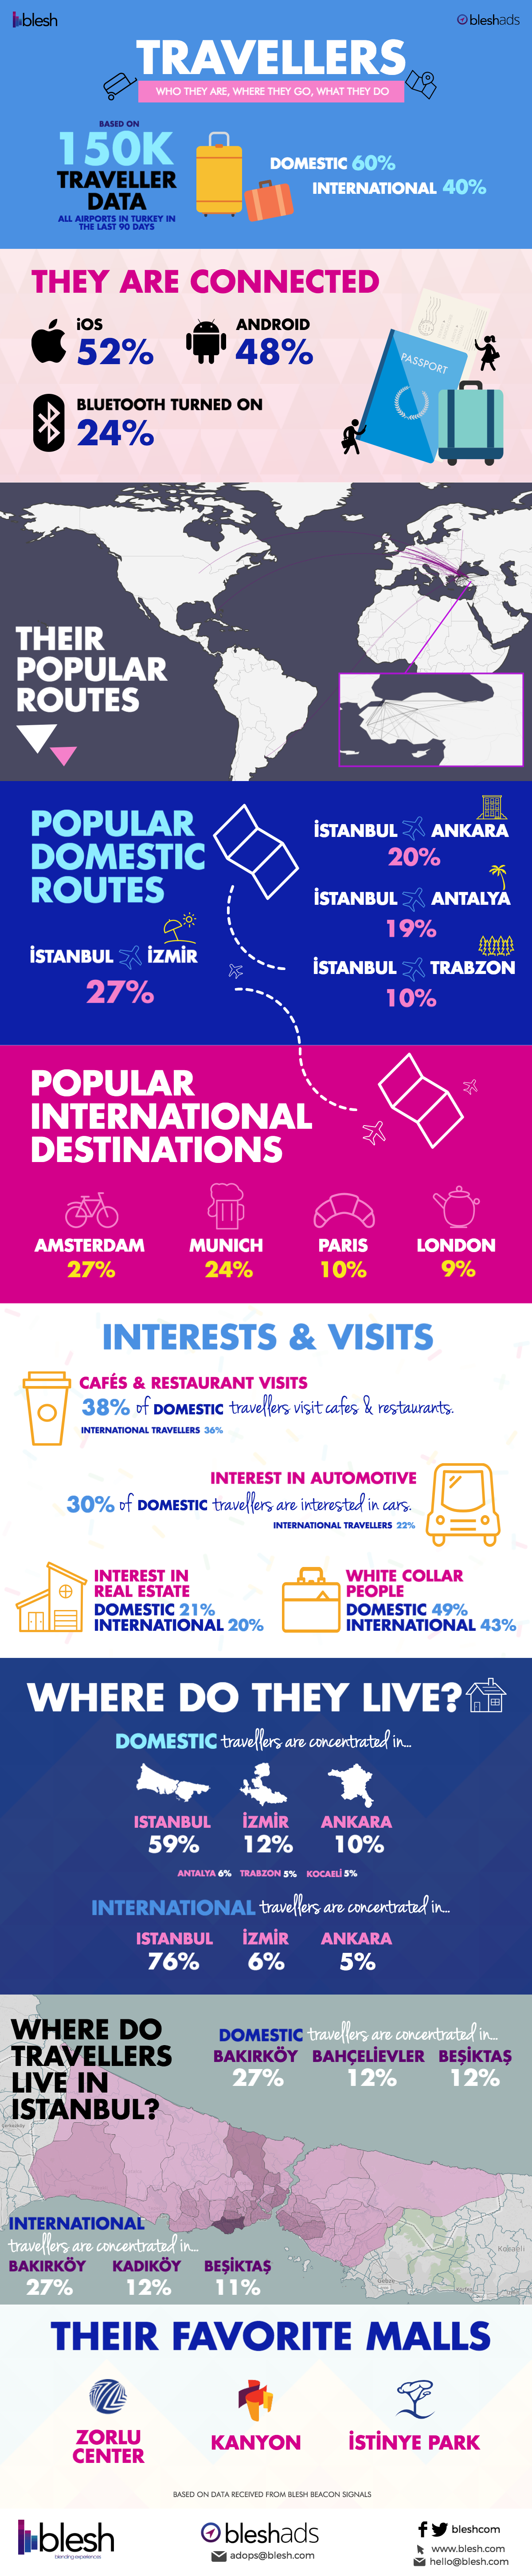 blesh-where-do-travellers-go_infographic